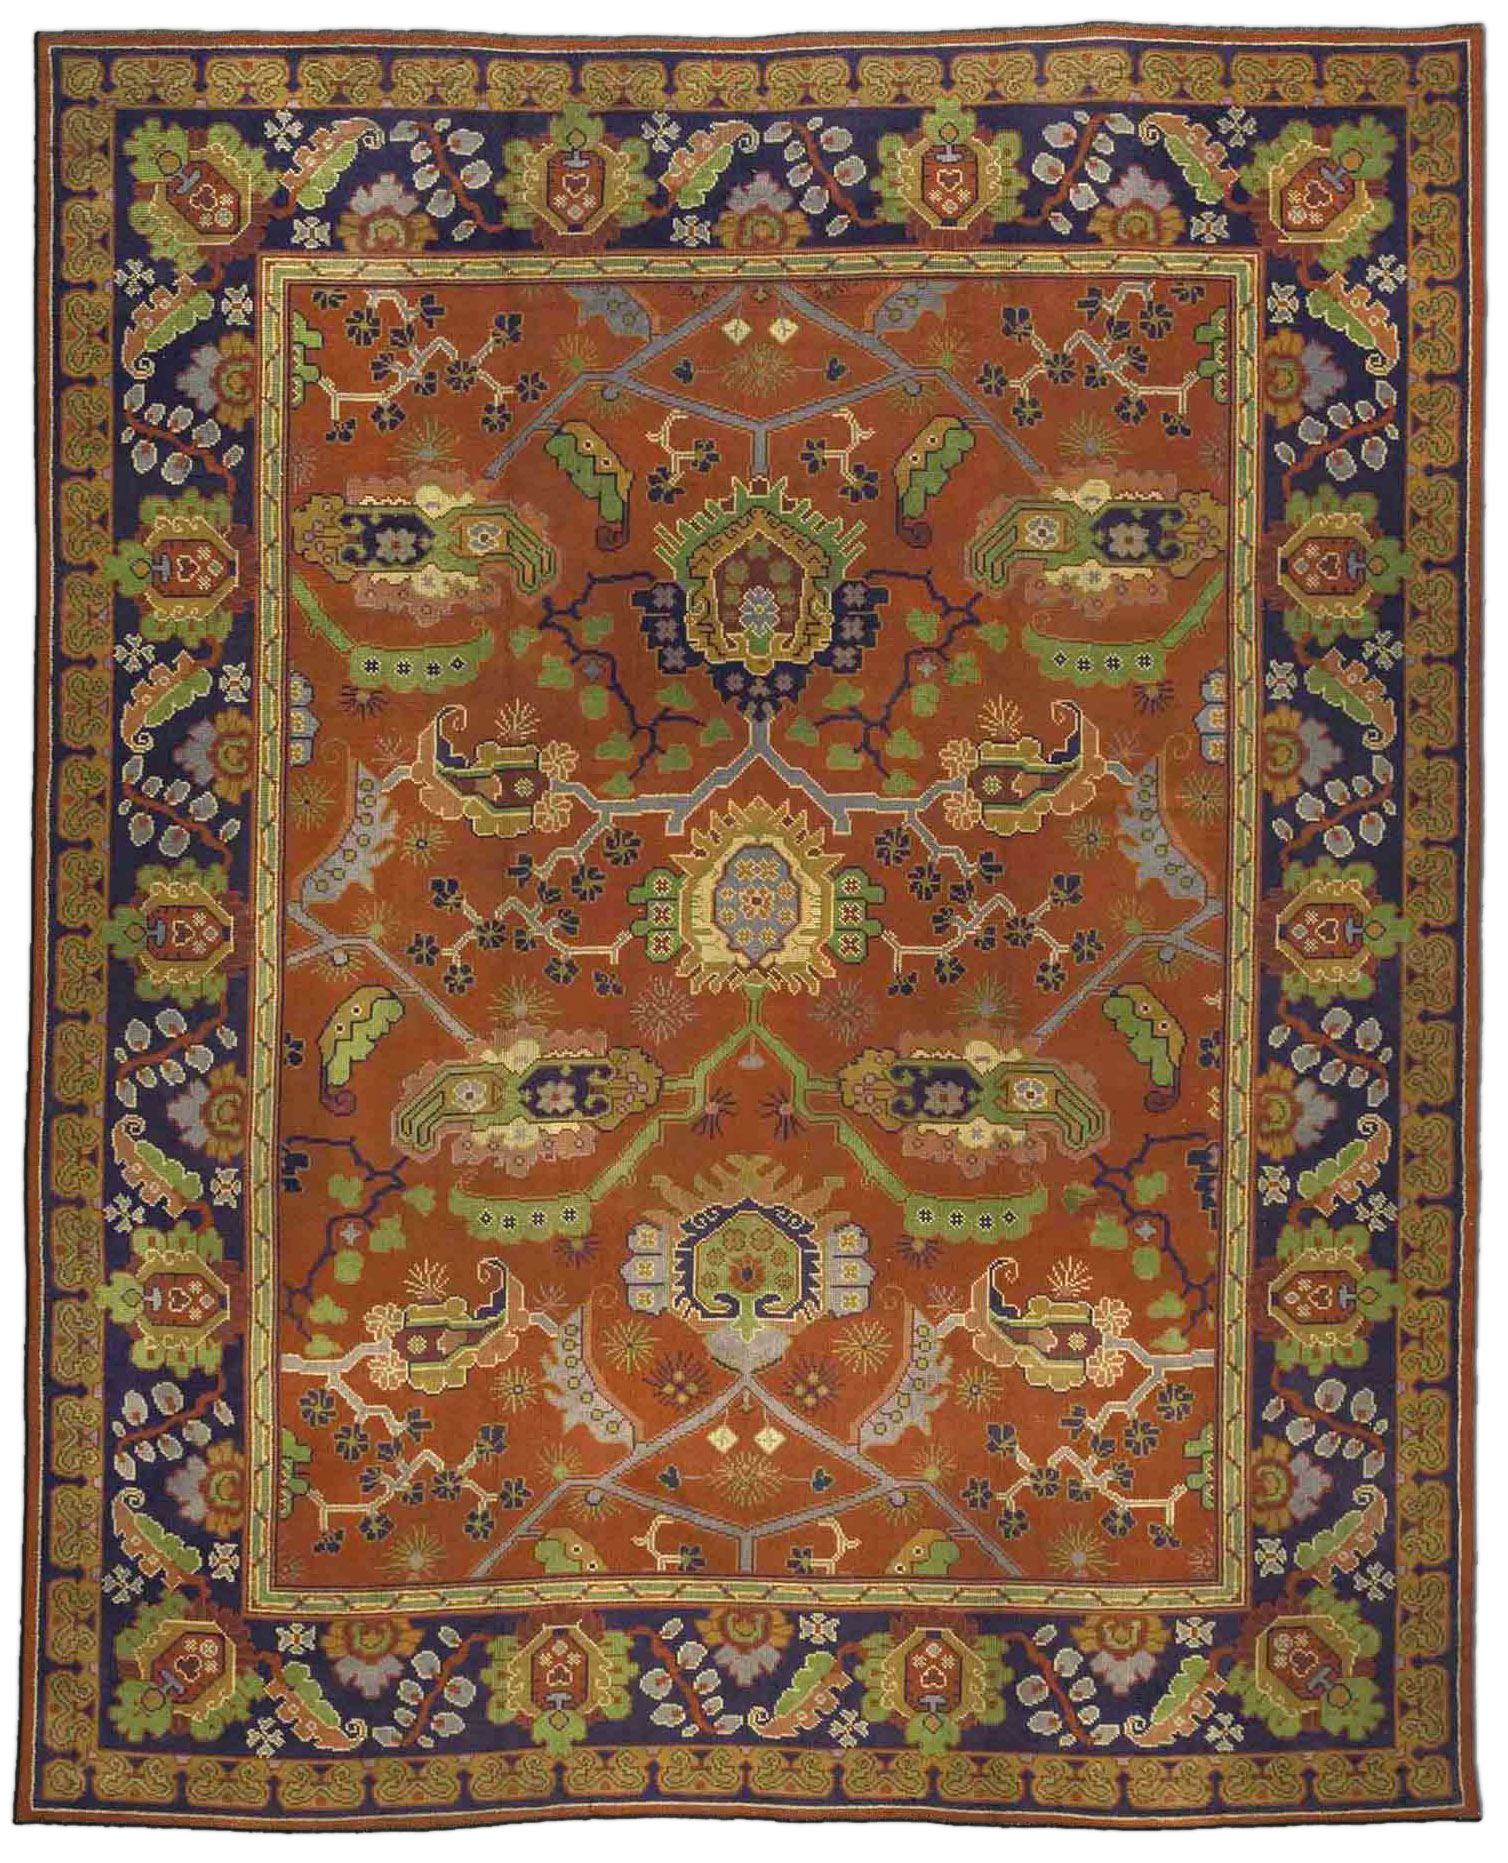 Arts rugs style crafts carpets for sale antique vintage for Modern arts and crafts